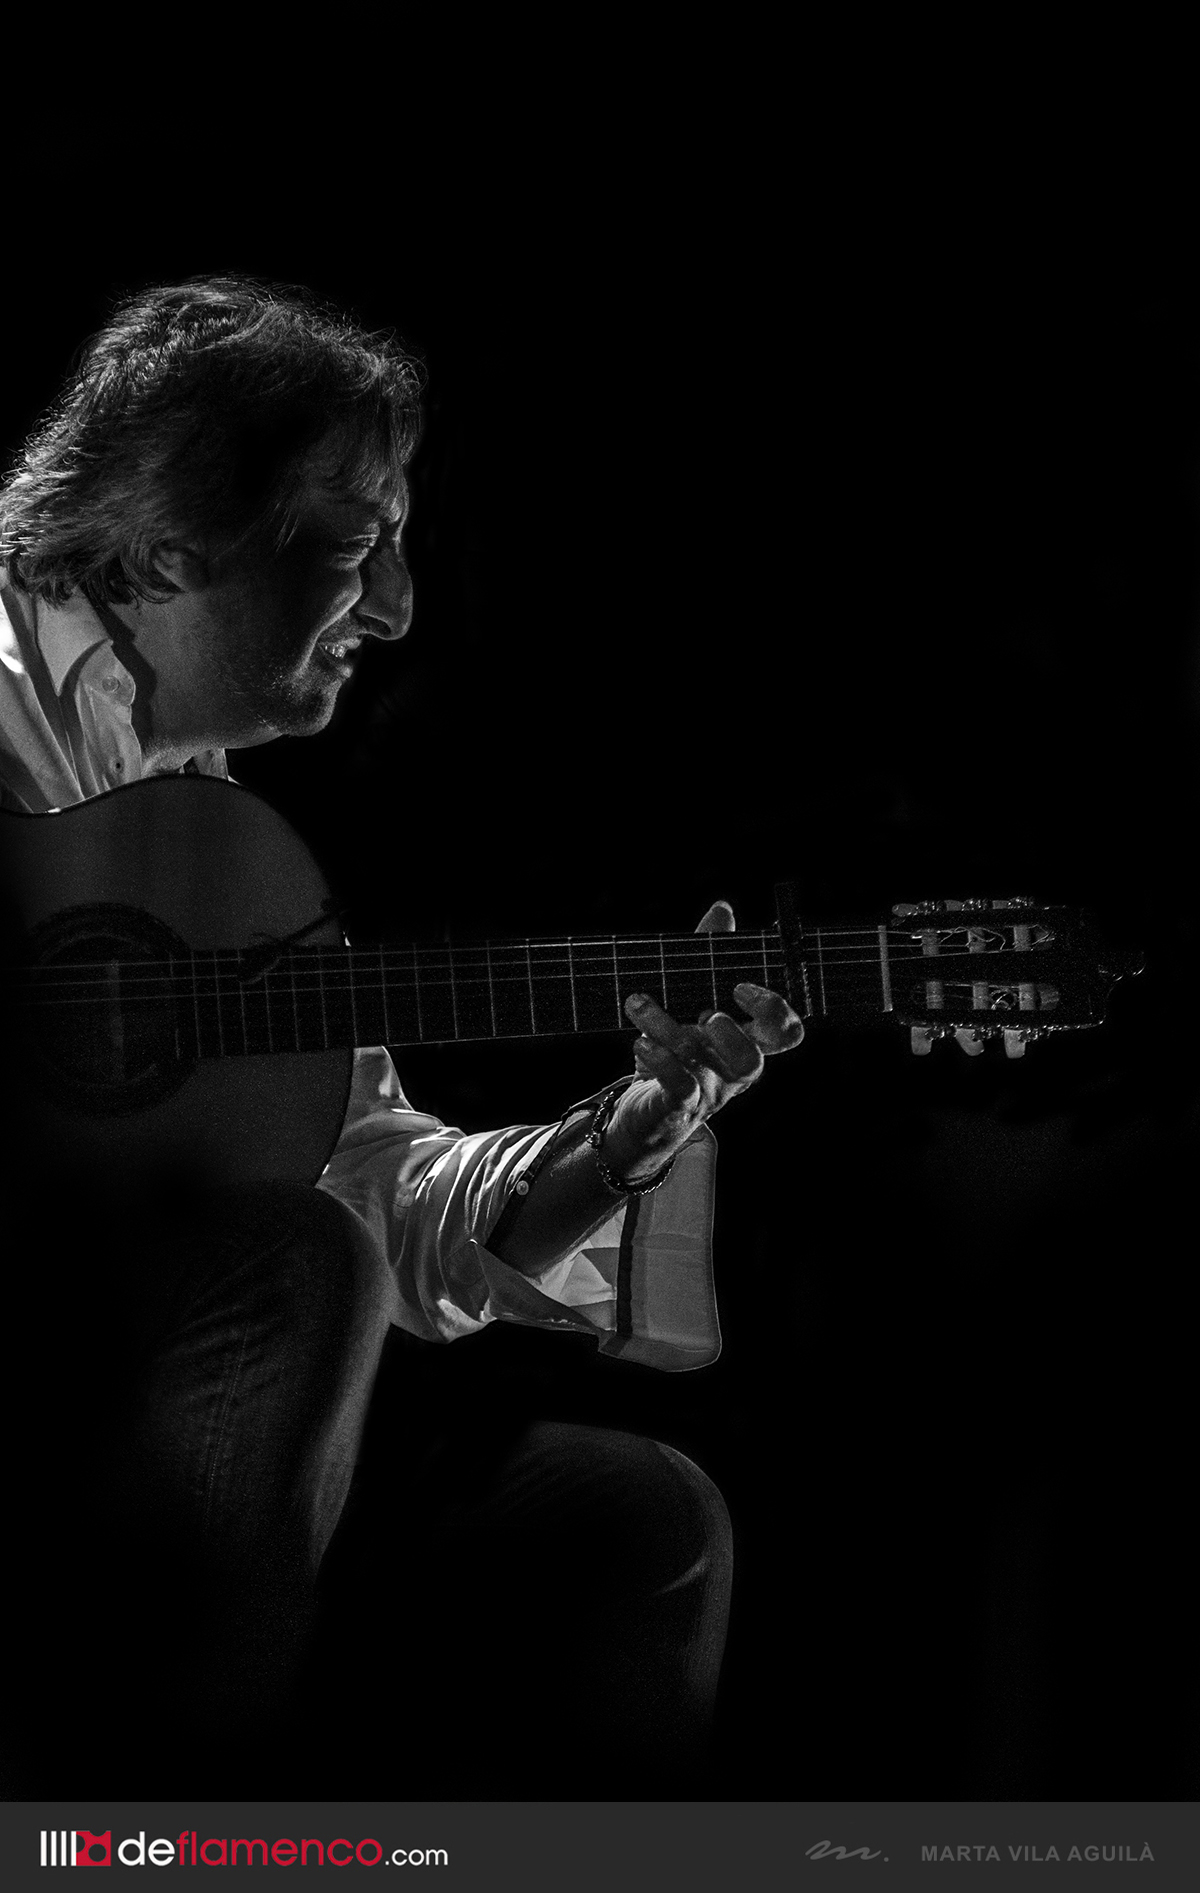 Juan Carmona, Flamenco on Fire